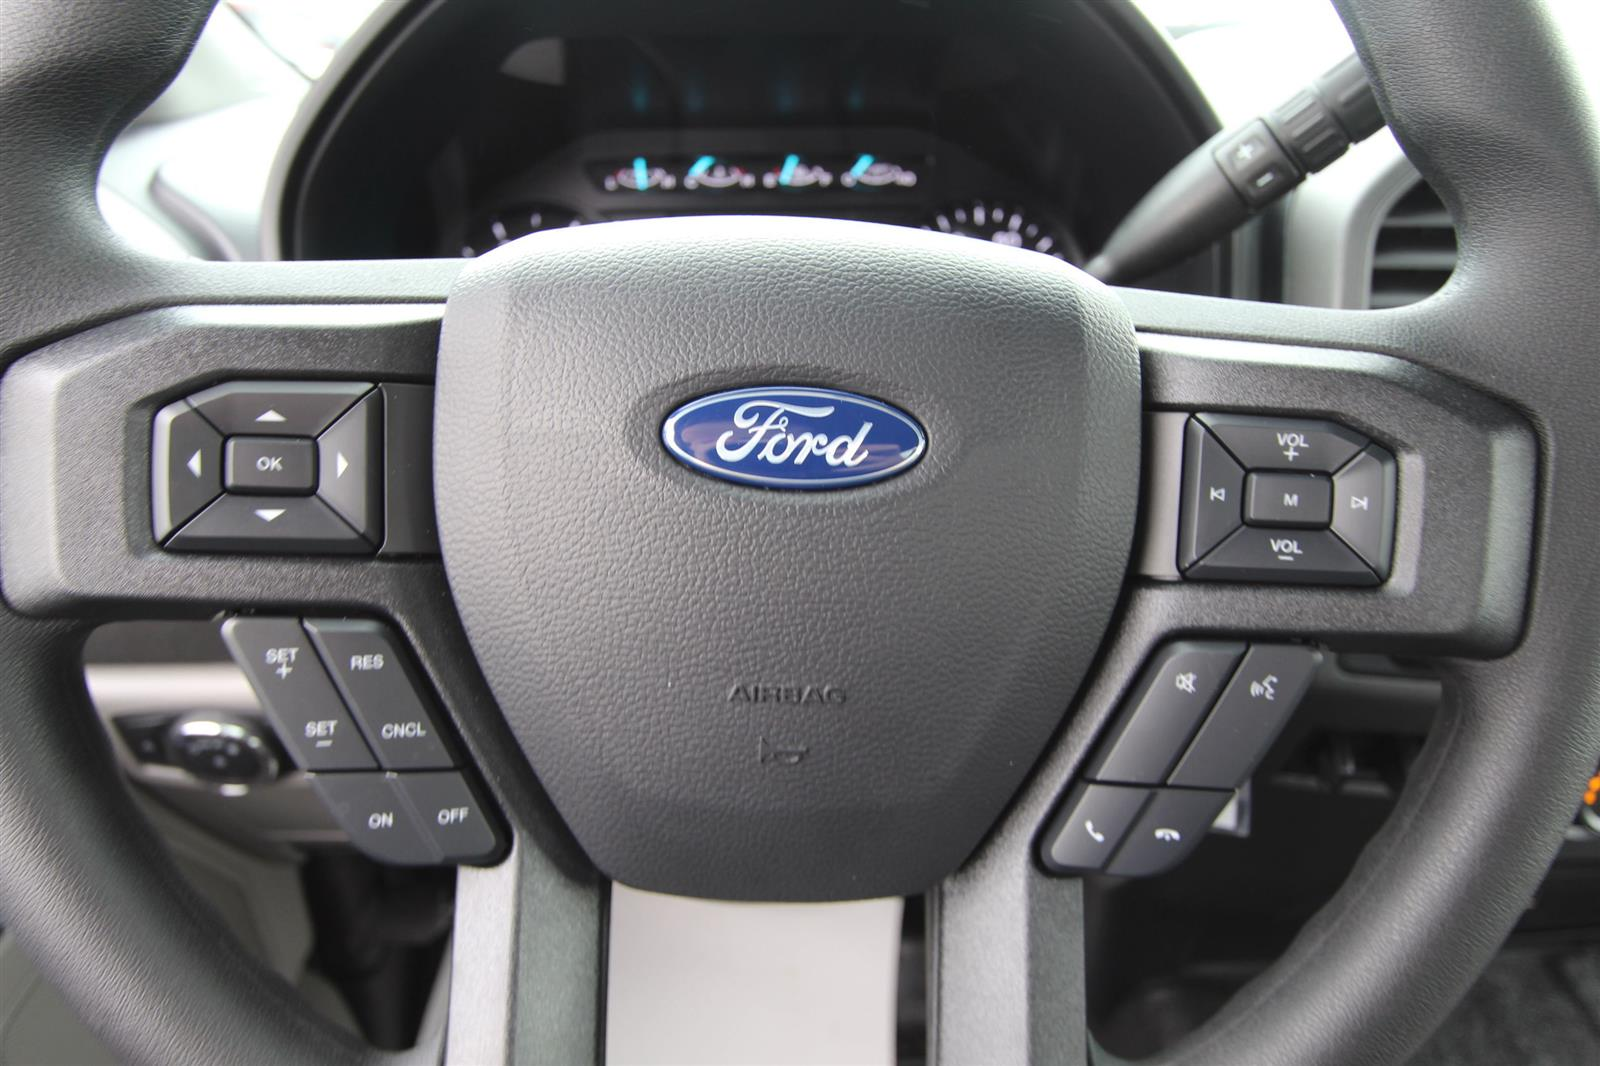 2020 Ford F-550 Regular Cab DRW 4x2, Cab Chassis #E9257 - photo 14